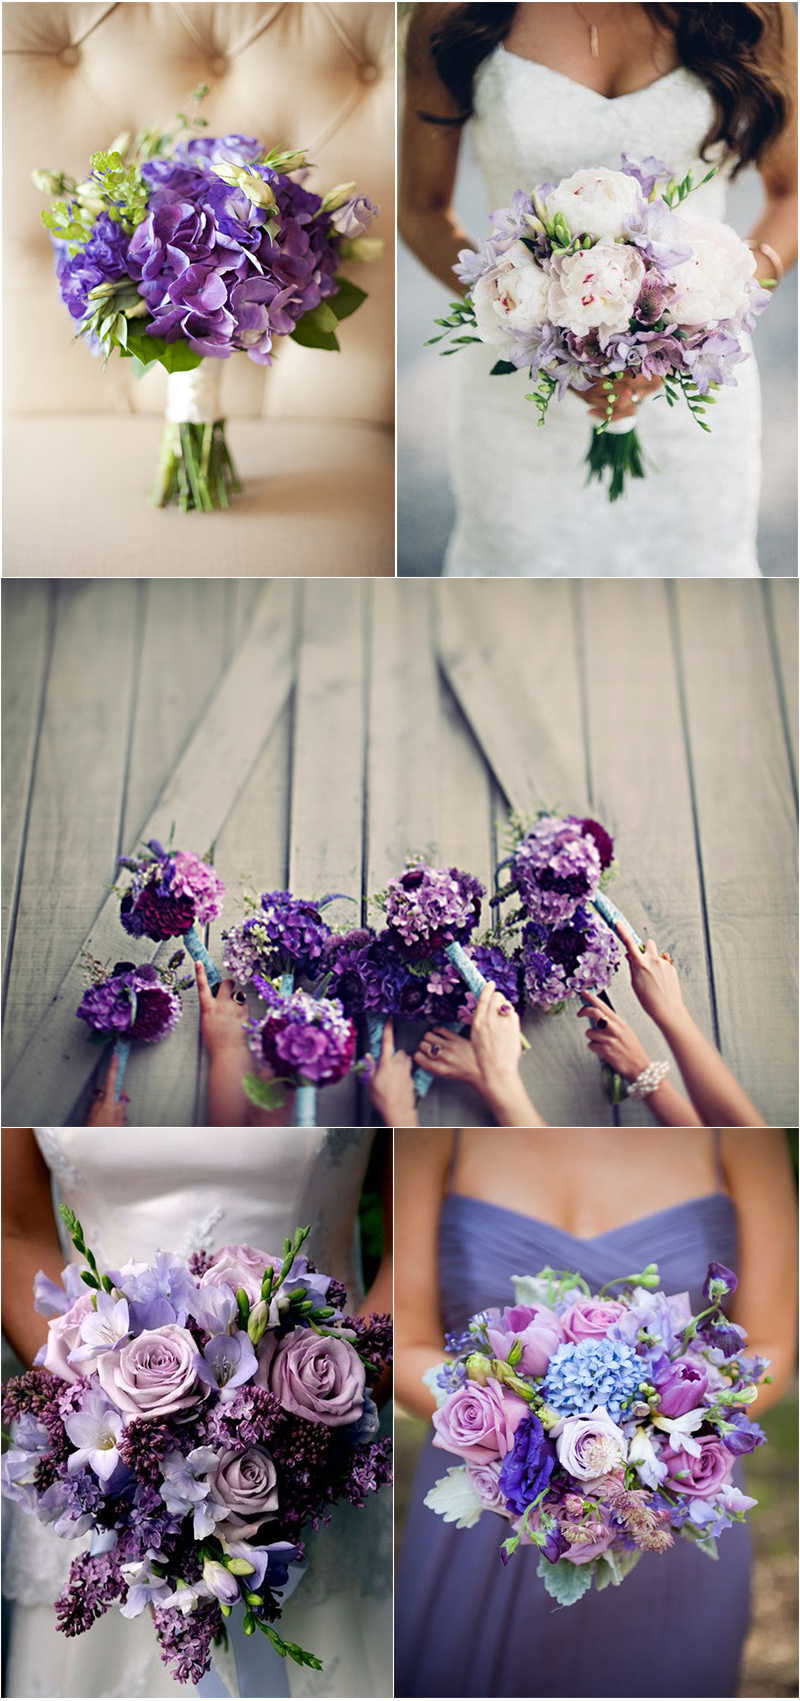 charming and elegant vioet wedding bouquet ideas